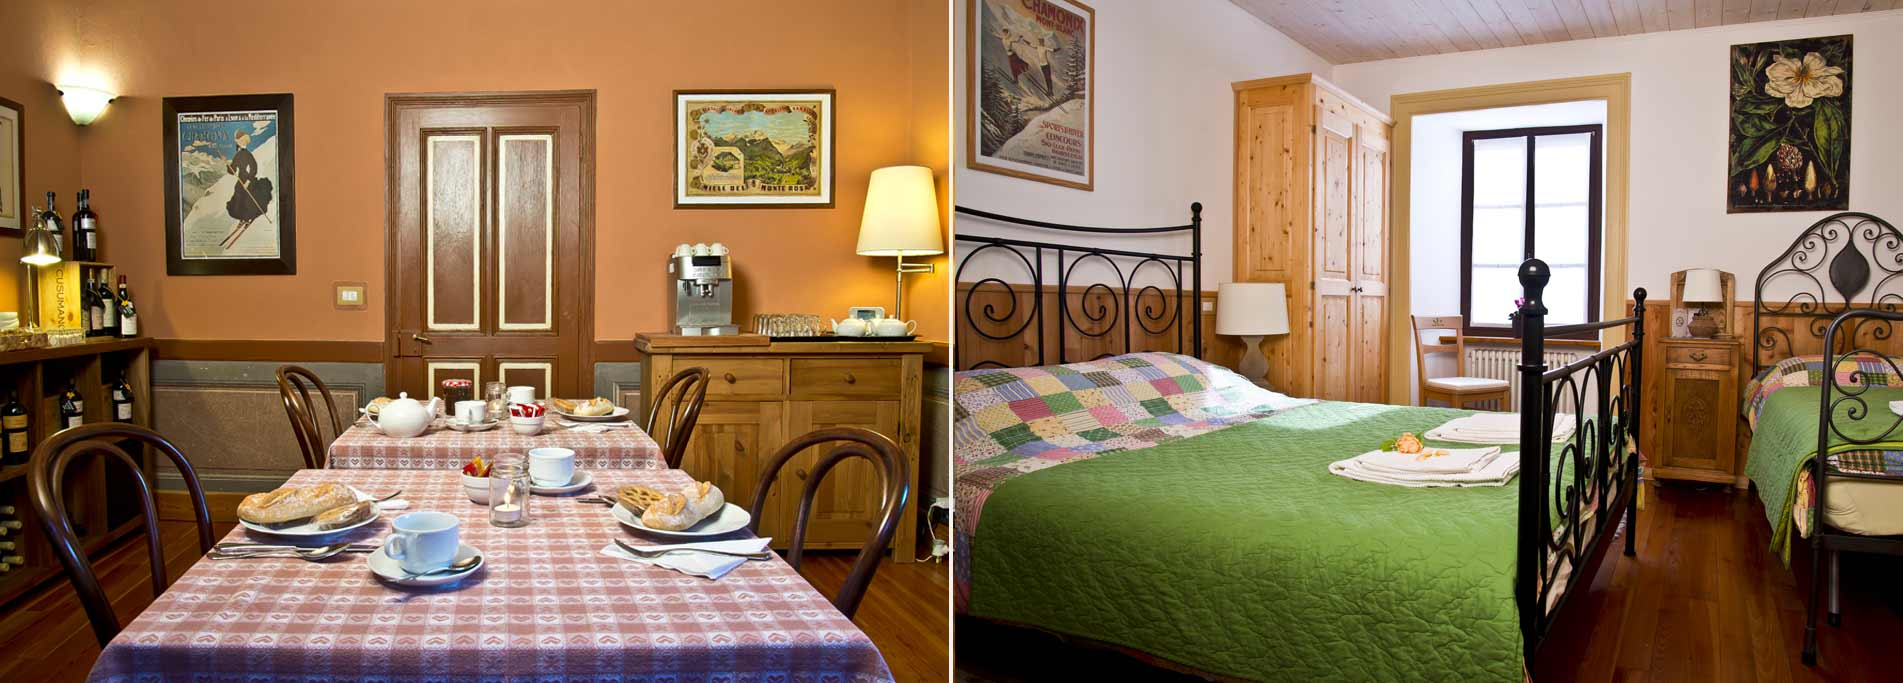 B&B - Locanda Margherita in Valsesia